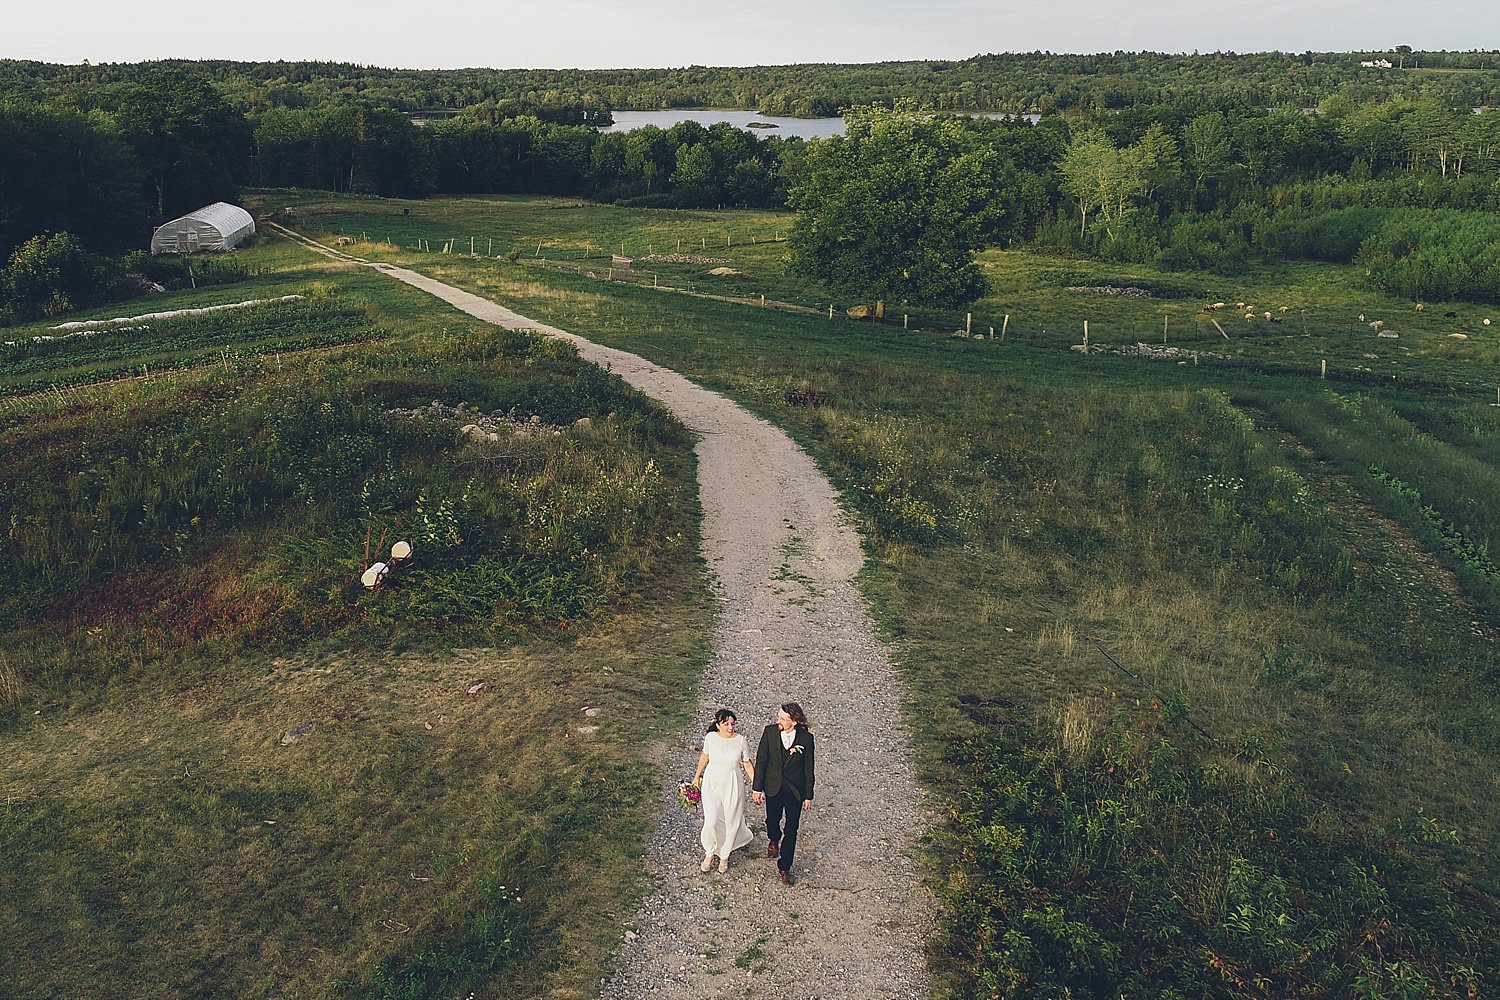 Ariel view of bride and groom walking through the farm